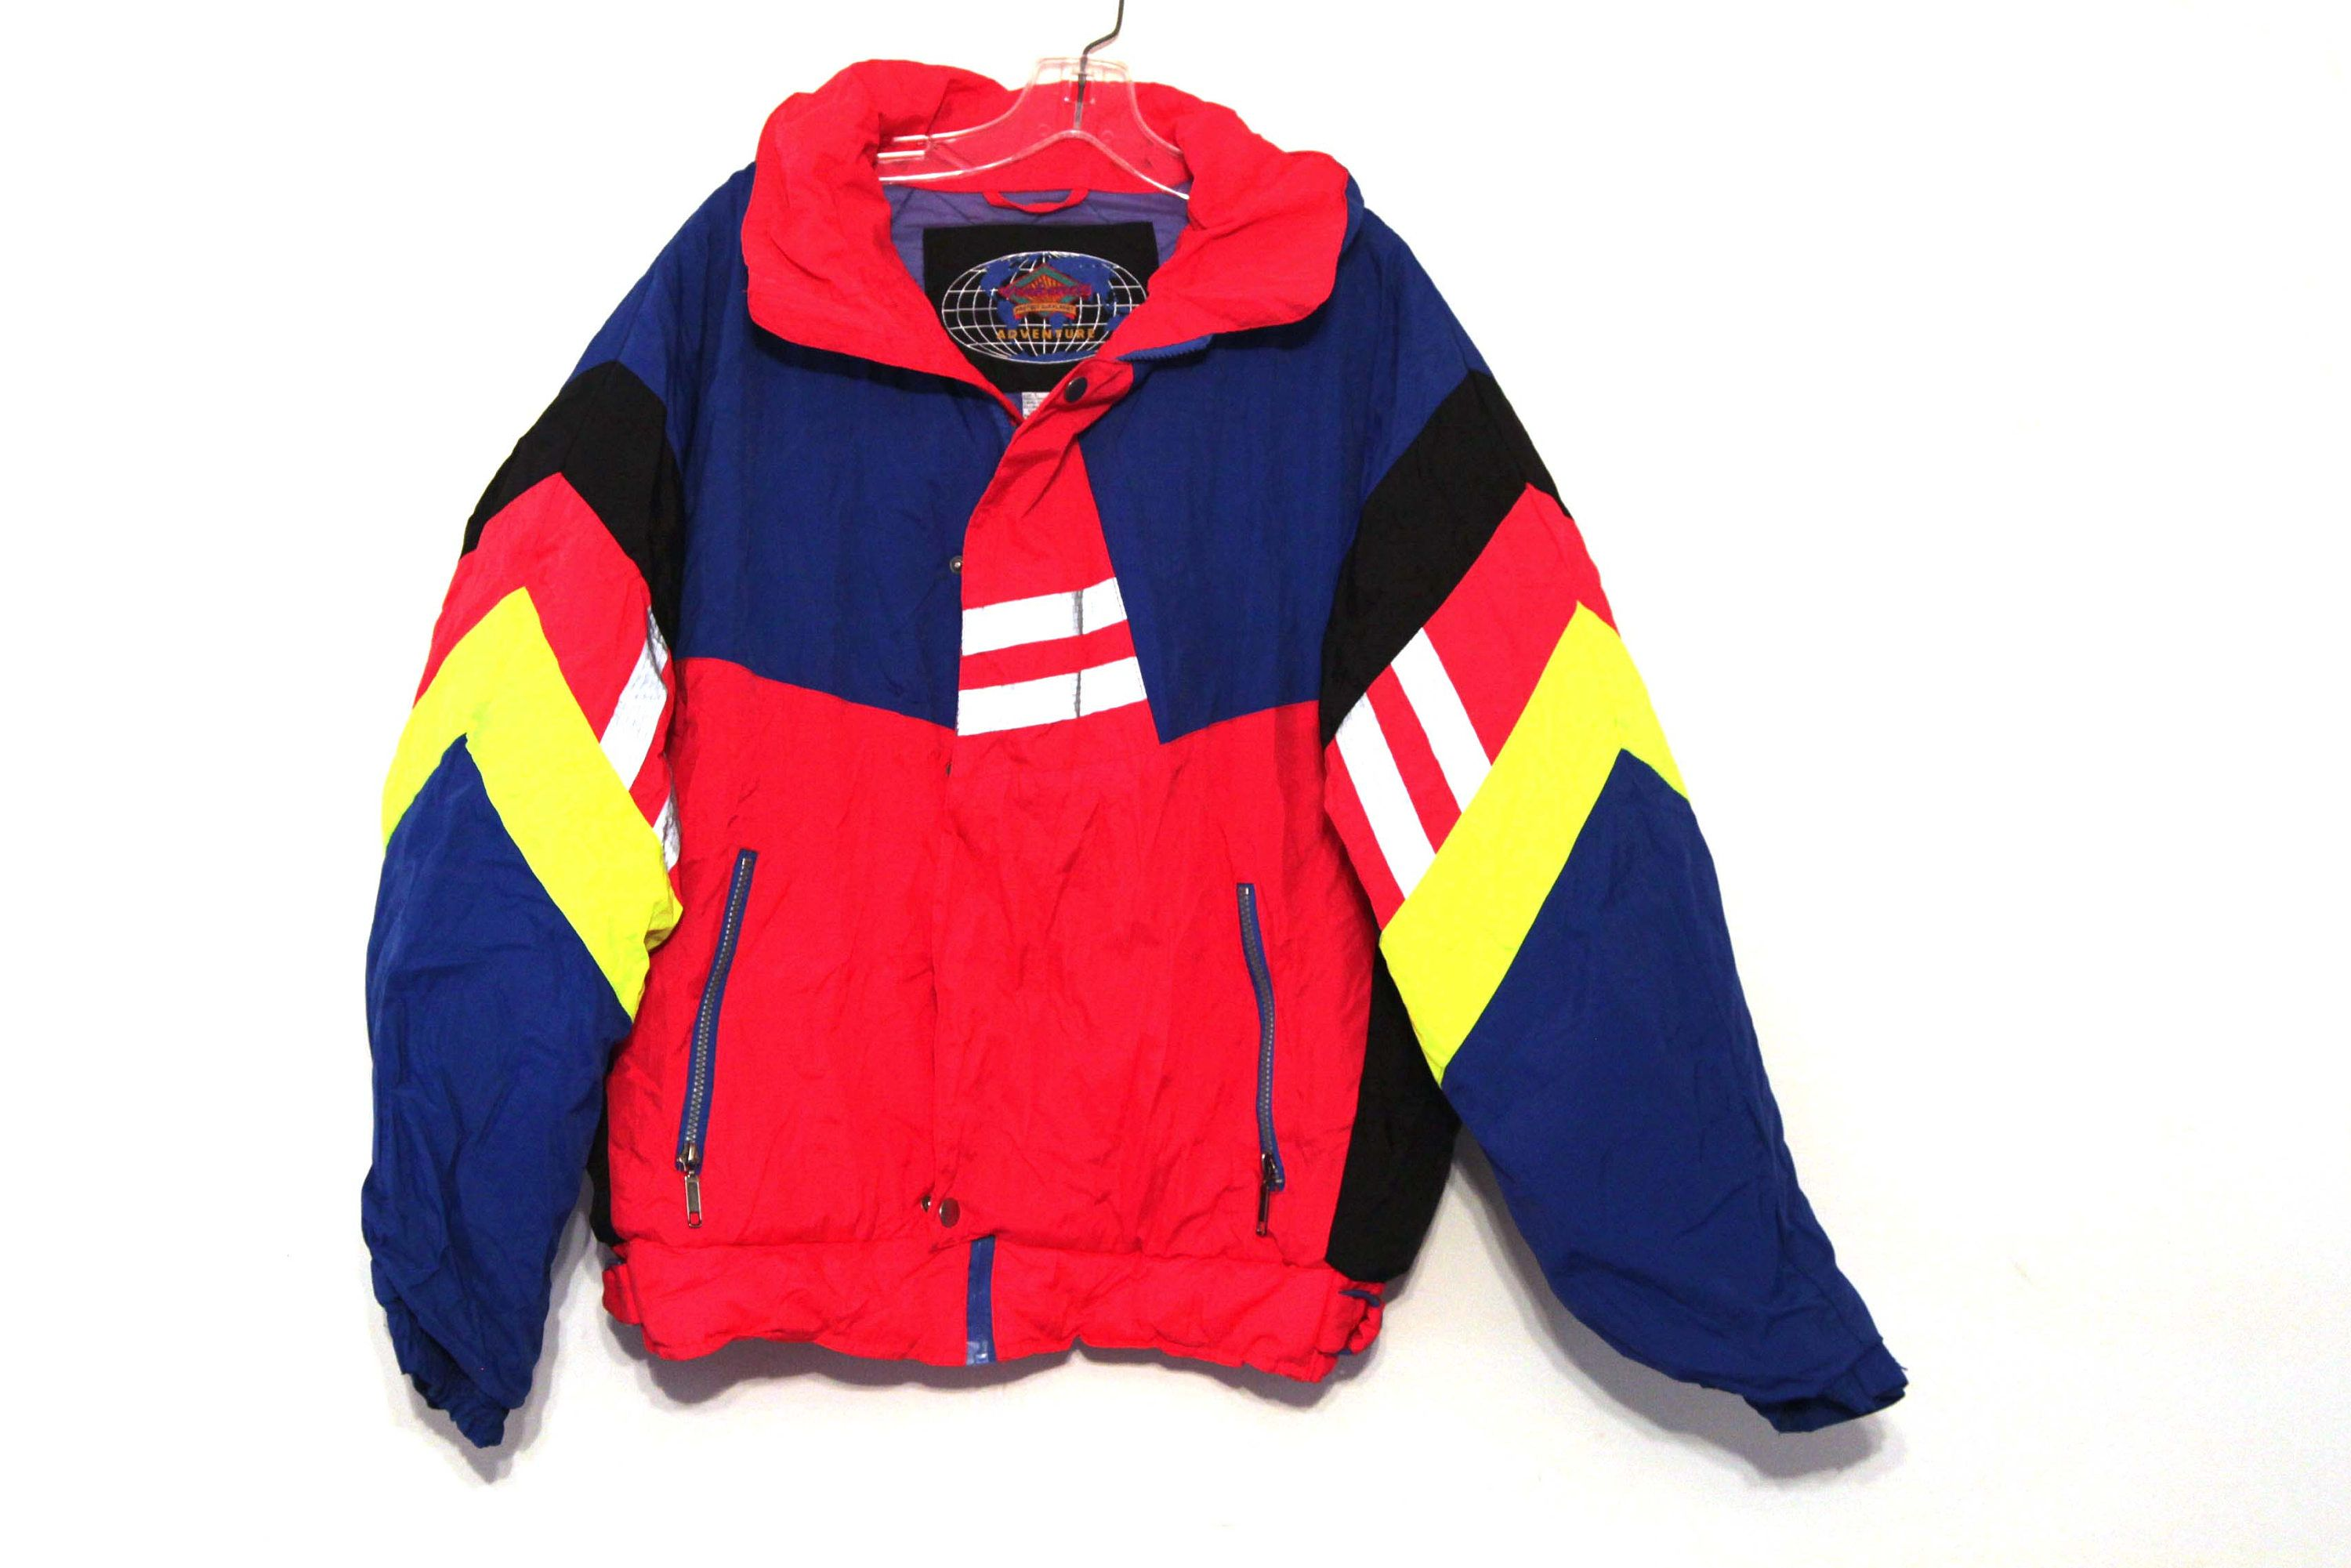 Vintage 80s neon coat ski jacket blue red yellow